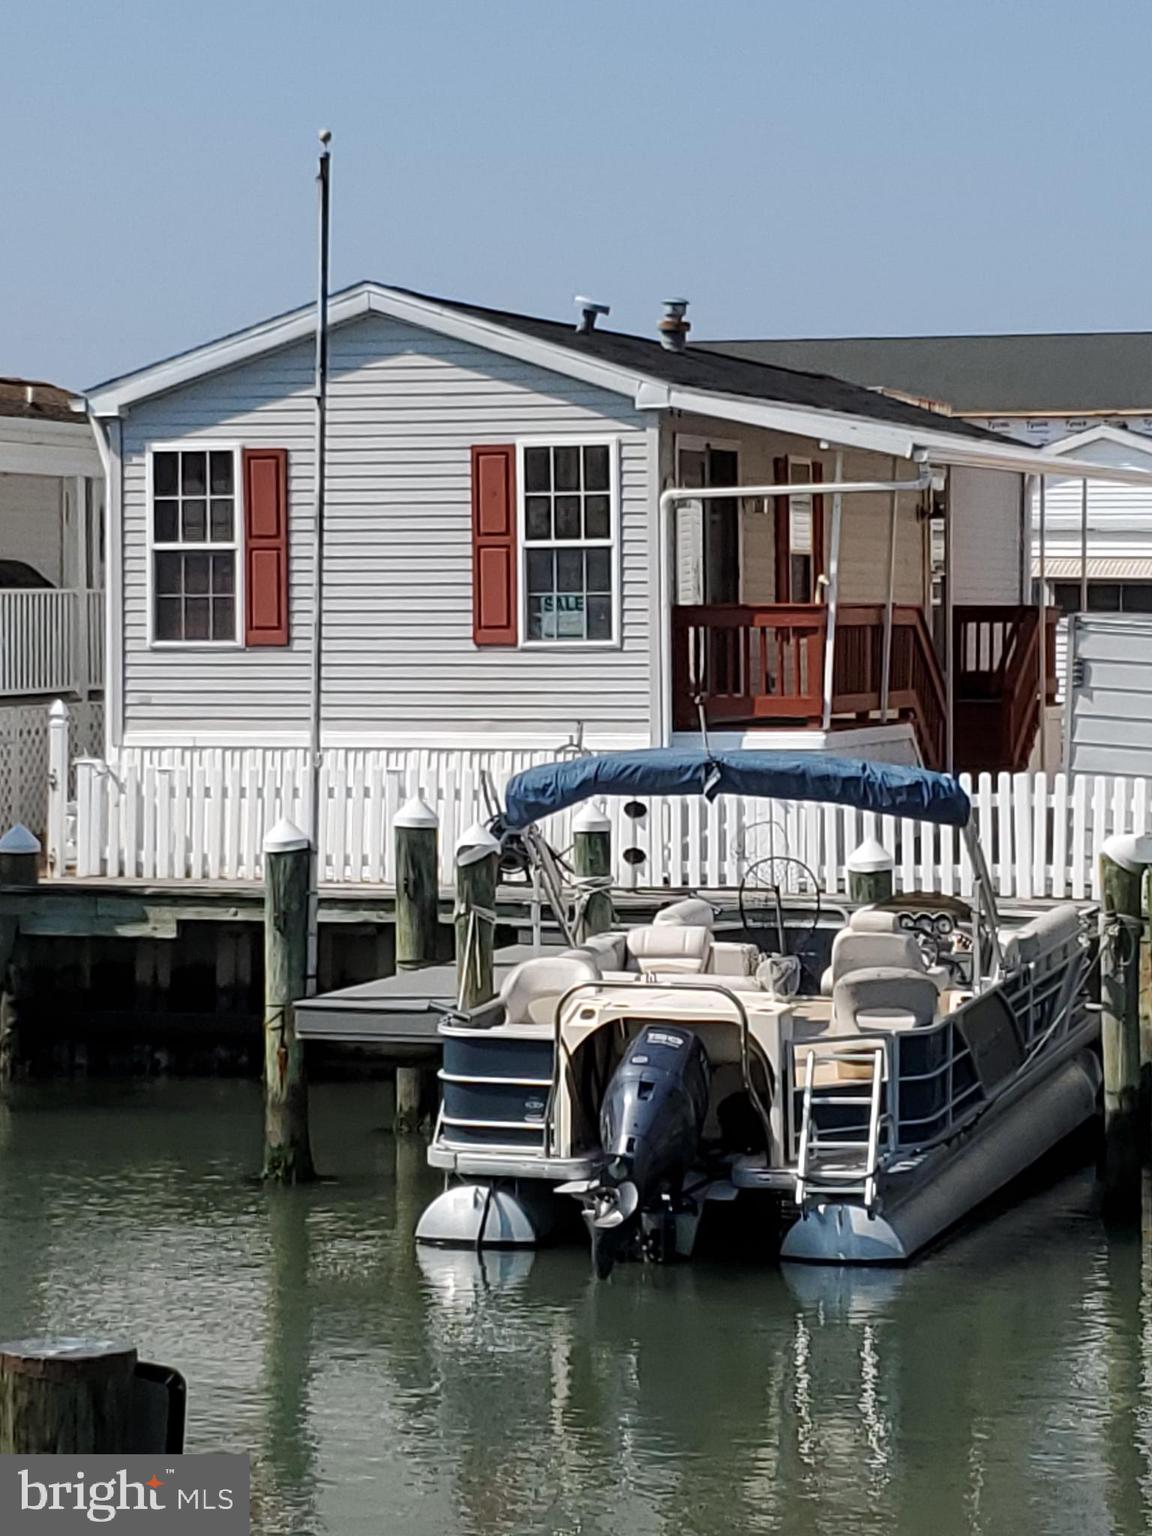 LOCATION LOCATION WATERFRONT! In the Heart of OC-BAYSIDE WATERFRONT with 2  BOAT SLIPS!  EASY BAY ACCESS & CLOSE TO INLET!    2 Blocks from BEACH & OC BOARDWALK!  2 PARKING SPOTS!  This well maintained home features 2 Bedroom 1 Bath, includes open Living Area & Kitchen with Slider just steps from your deck & Boat slips.   New Carpet & Freshly Painted, Lots of Storage,  Open Deck & Covered  Awning For Entertaining!  This property is located in the Isle of Wight Co-op and is conveyed with 3,400 Shares of Stock.  Low monthly park fee of 114.00 which includes water, sewer & trash removal.  Low Closing Cost!  Won't Last Long at this Price!!  So Don't Delay and Call Today!